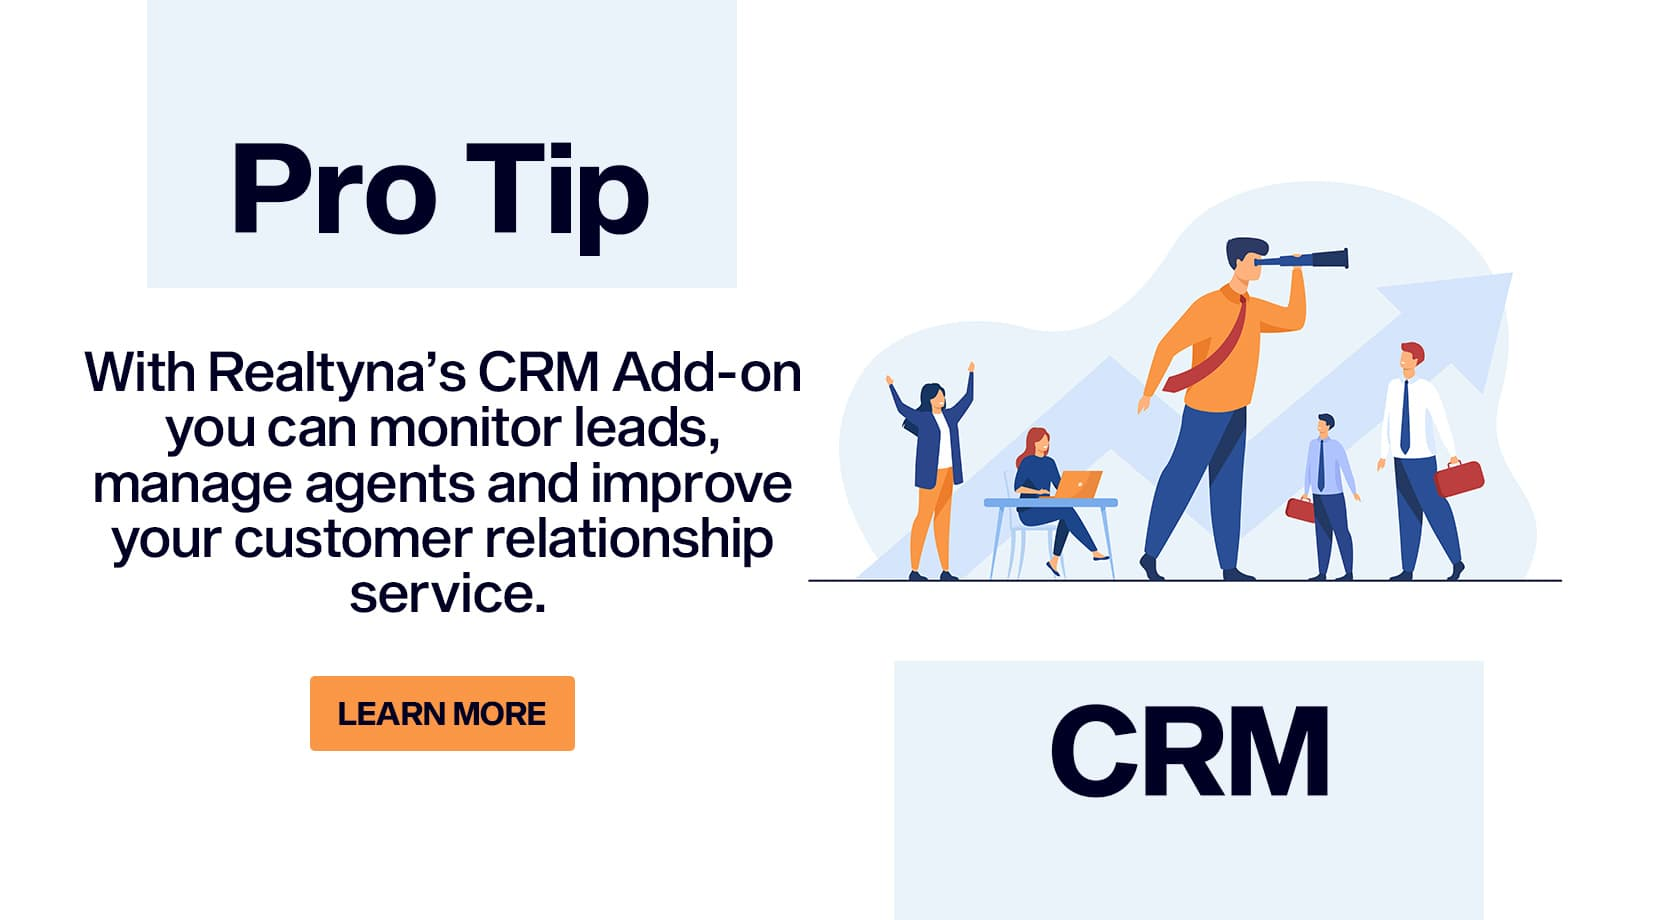 Realtyna's CRM